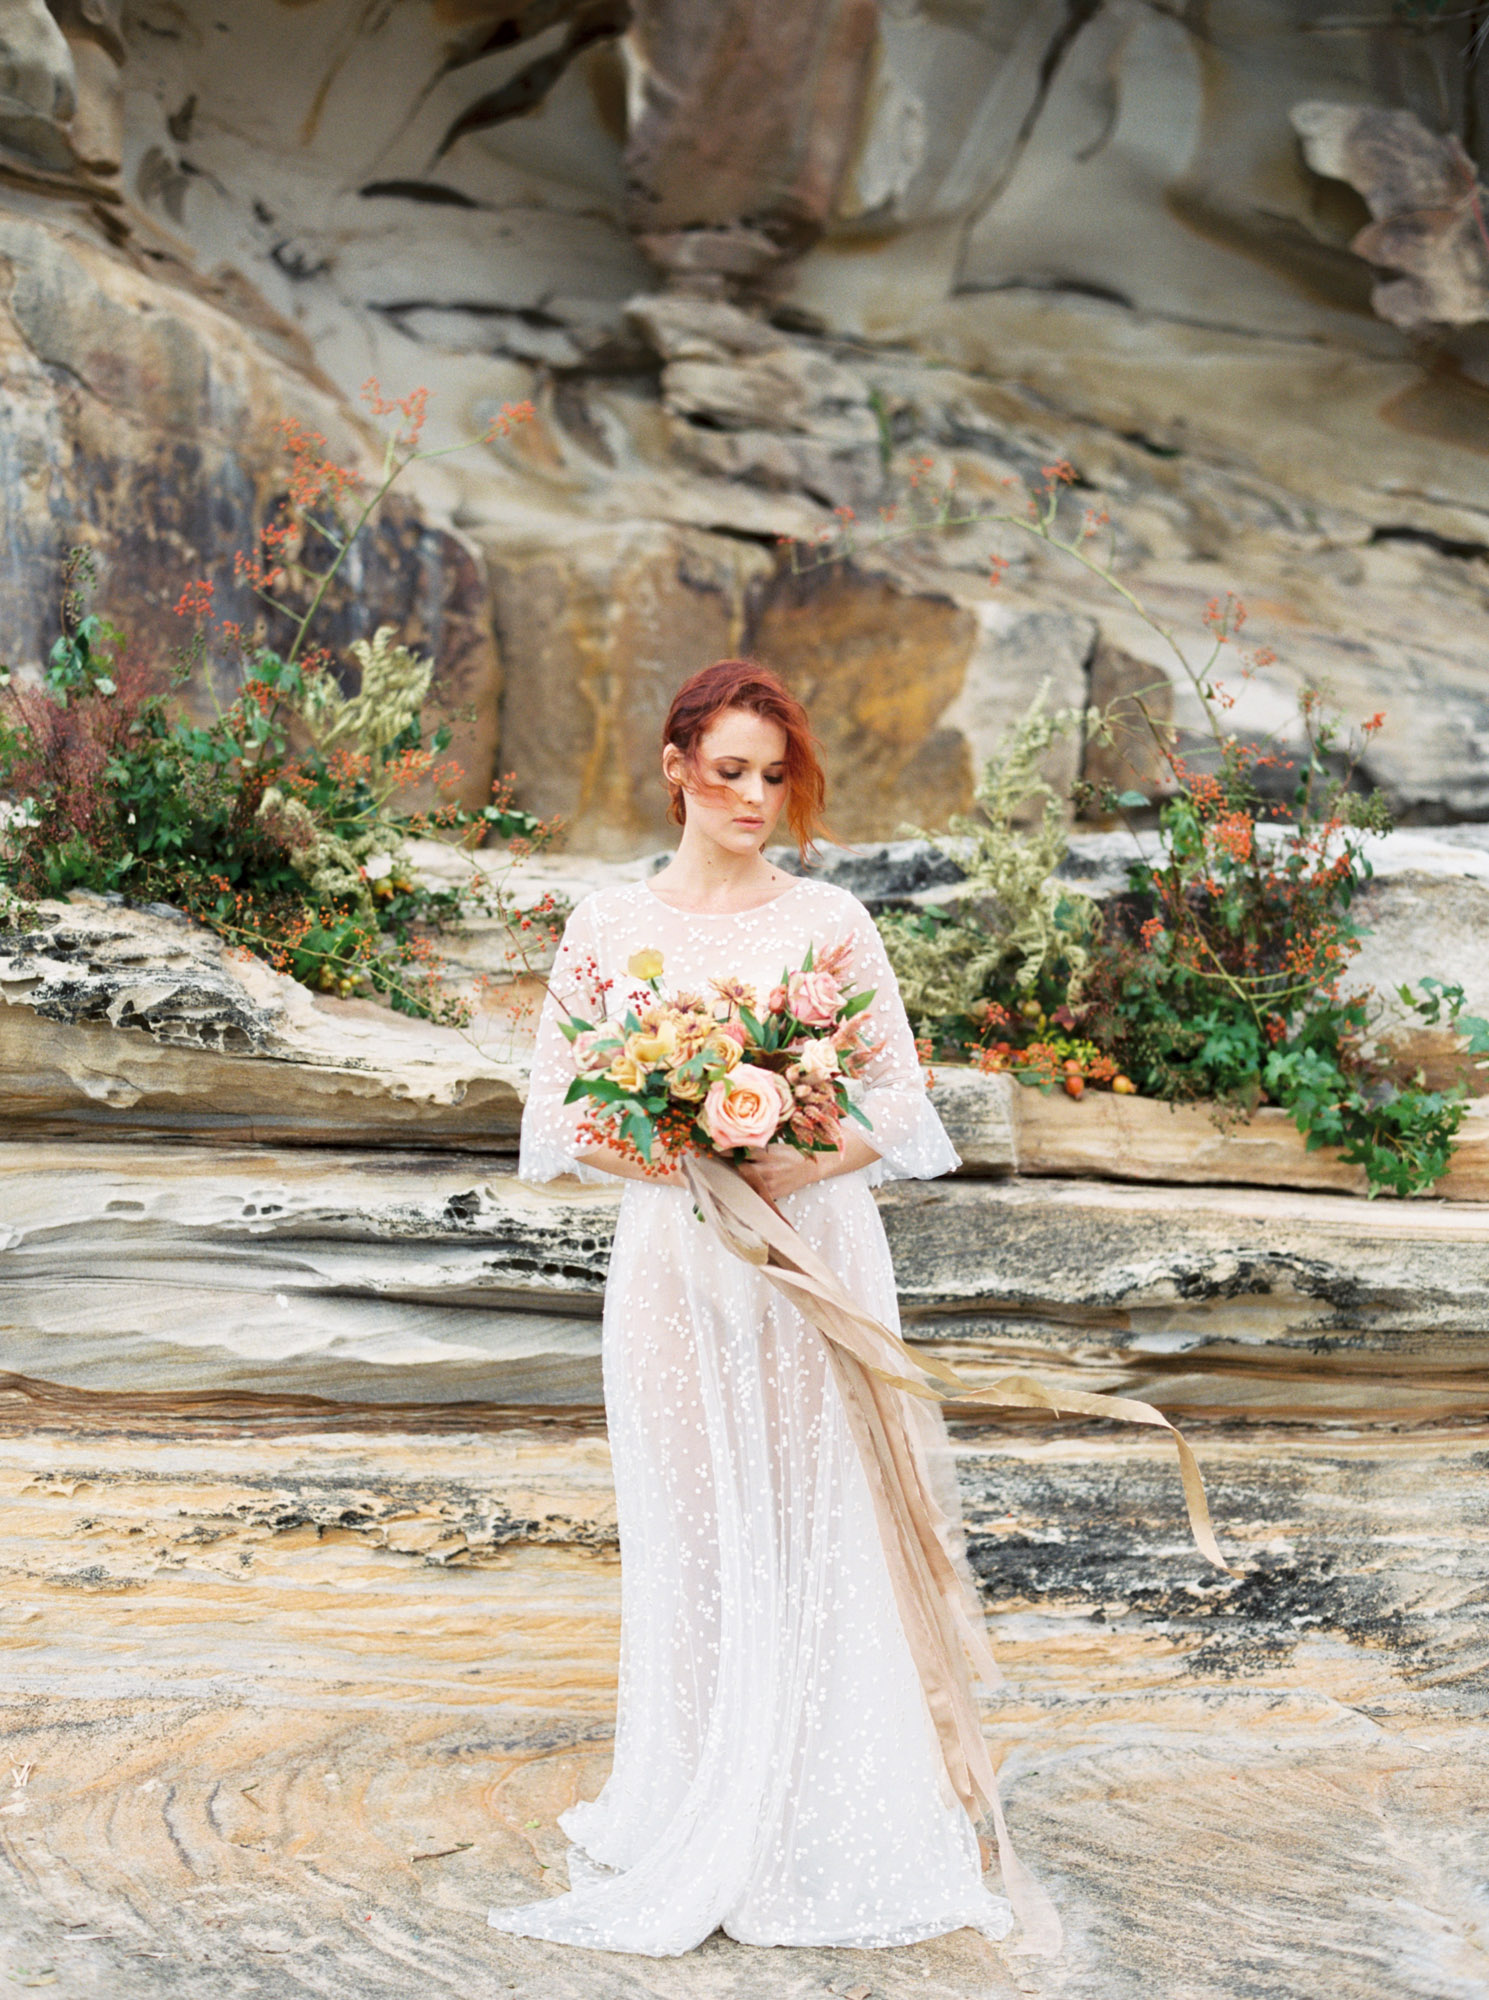 00023- Fine Art Film Newcastle NSW Wedding Photographer Sheri McMahon.jpg